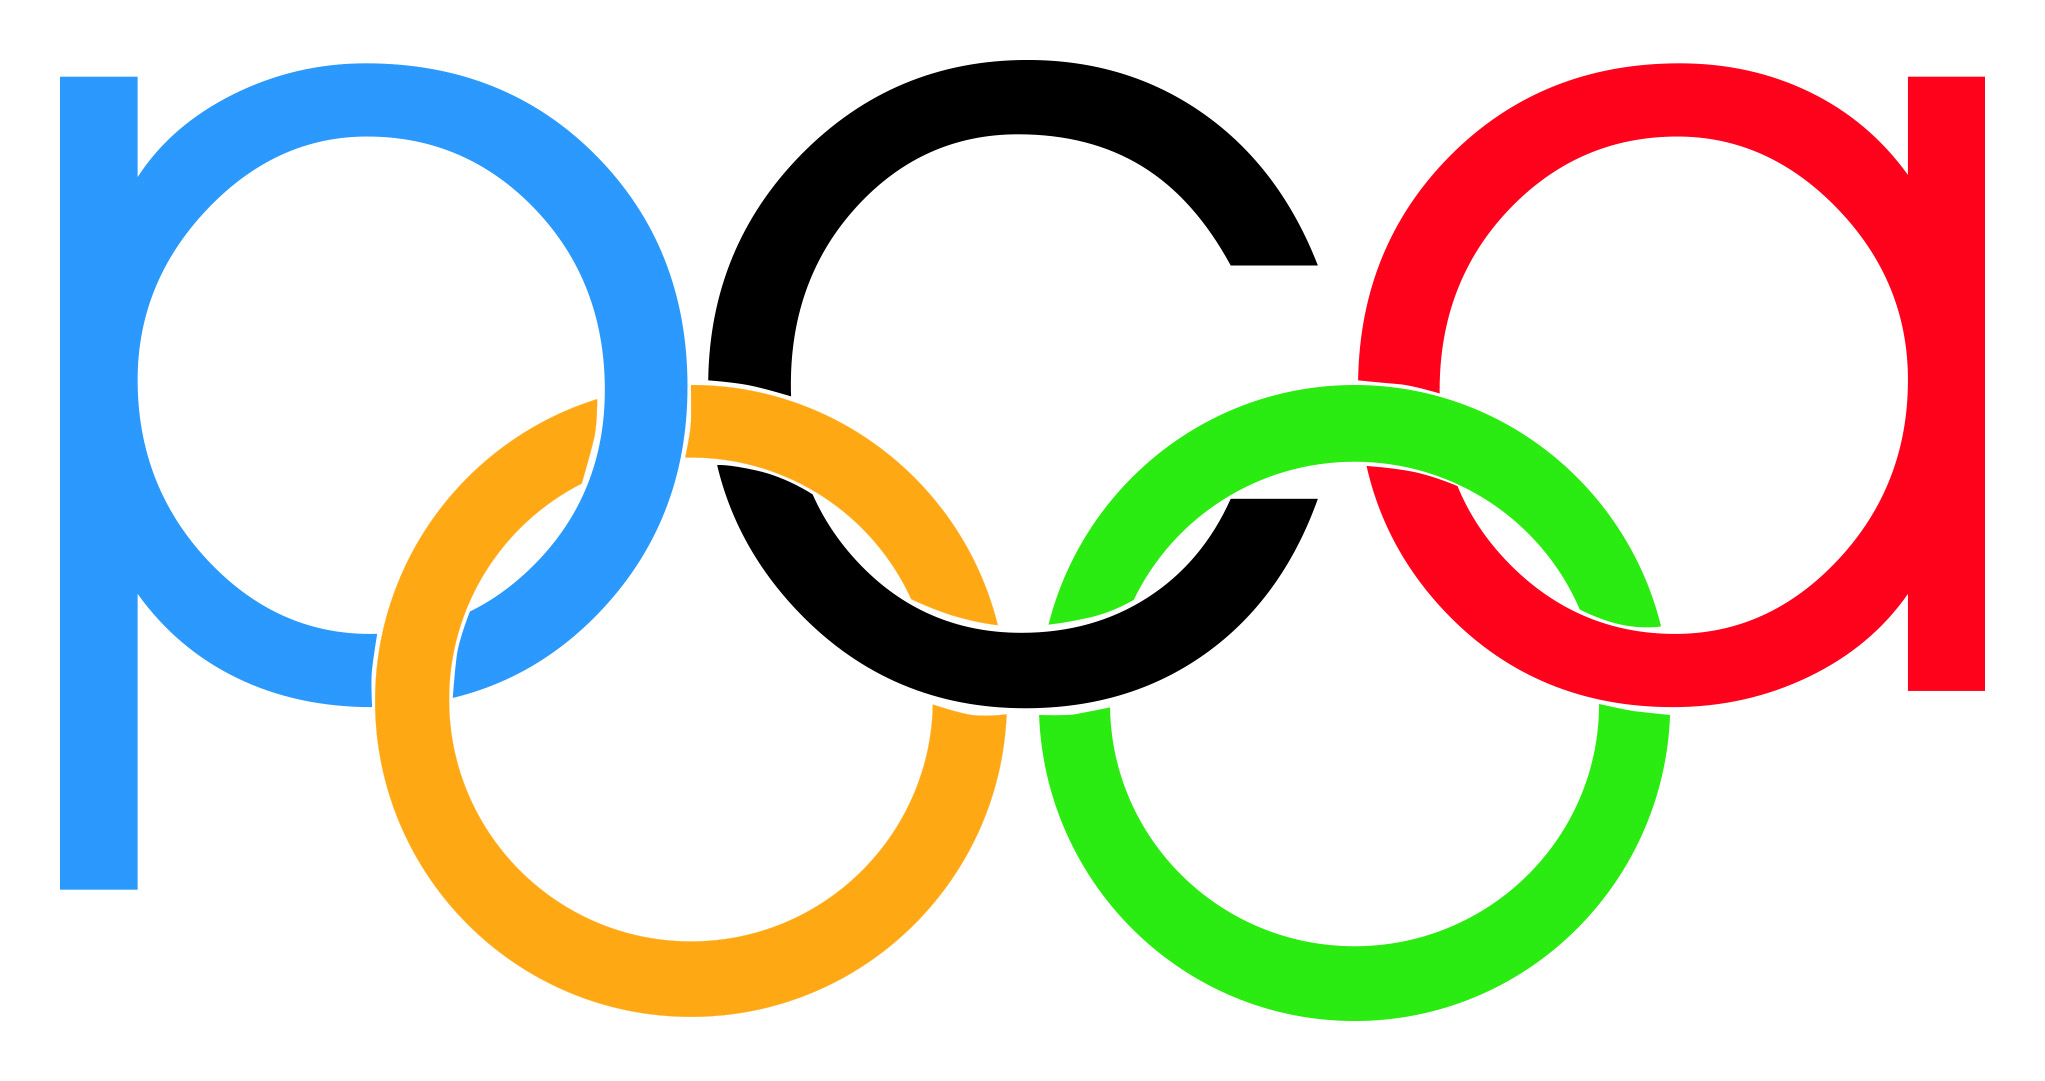 Olympic Rings Image - ClipArt Best